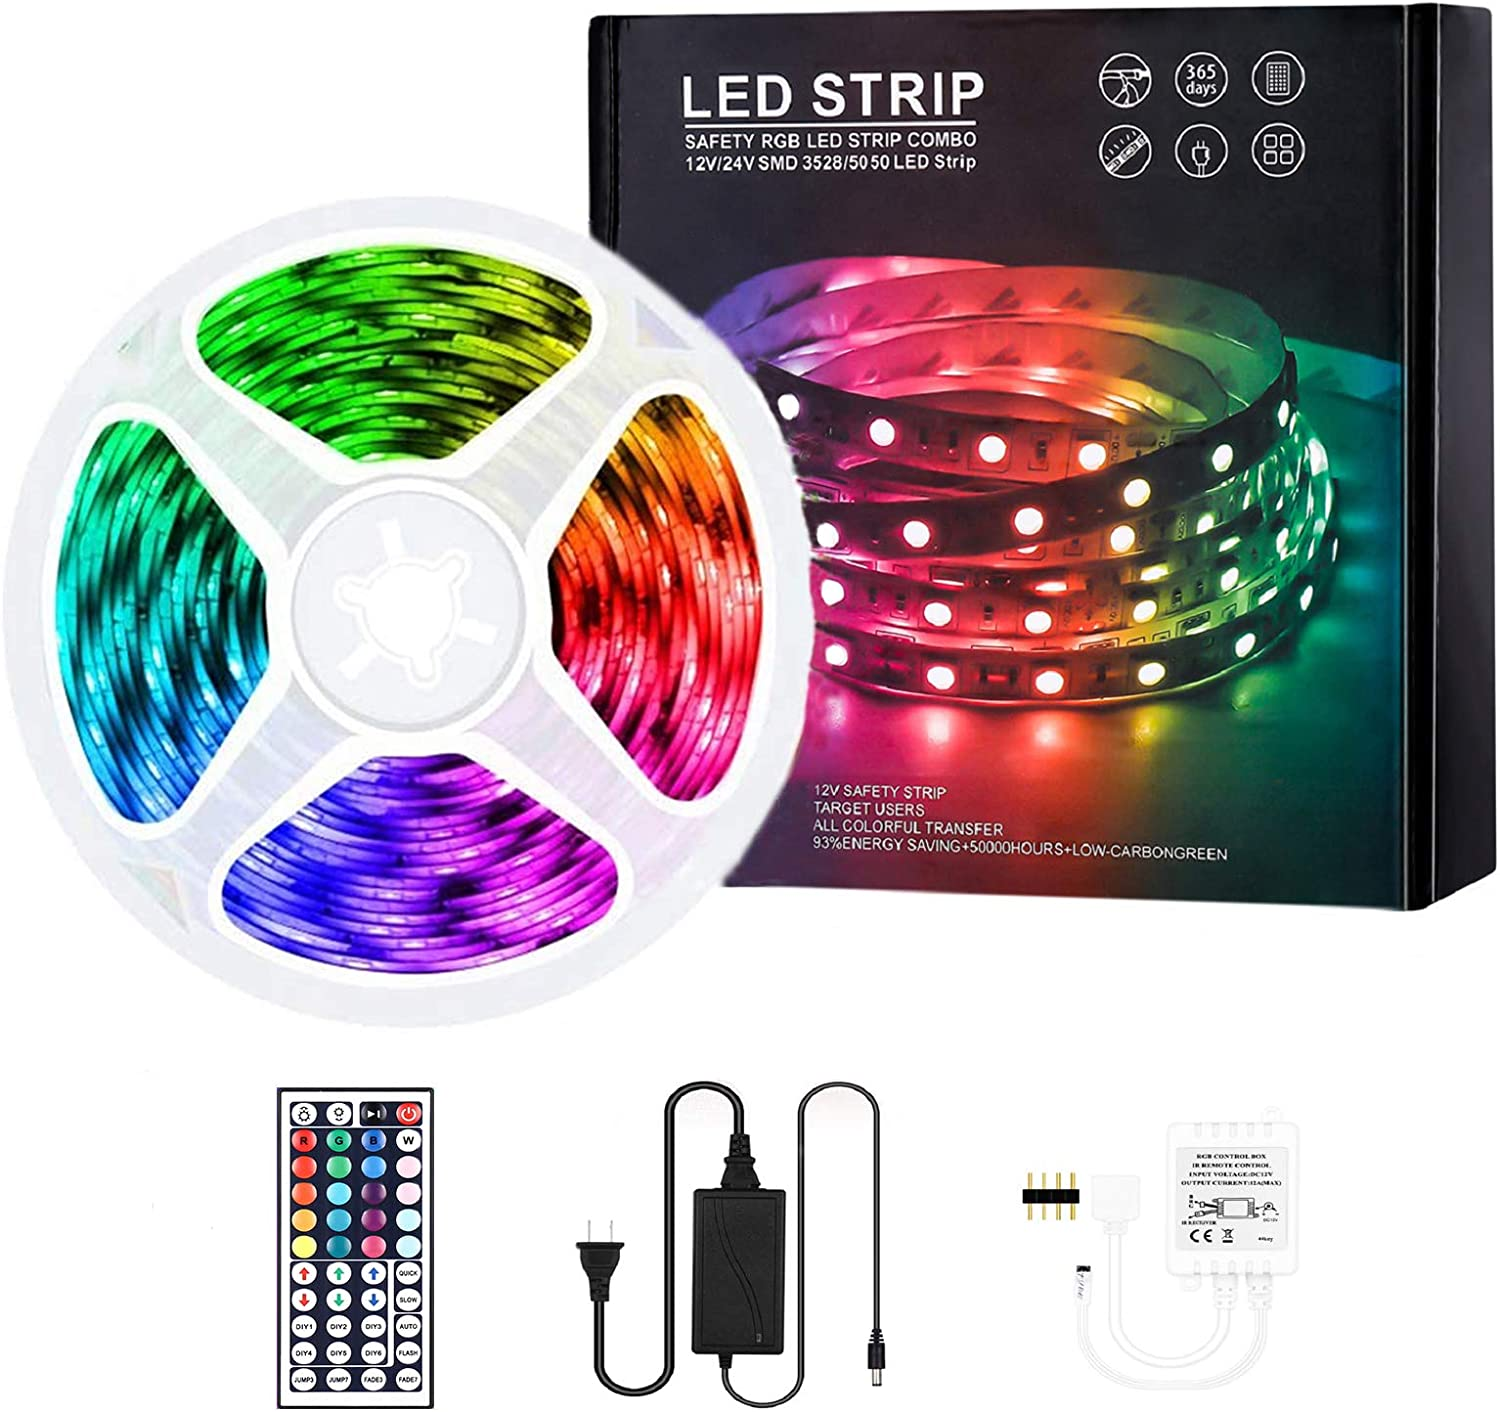 Max 45% OFF Led Strip Lights 16.4ft RGB LEDs 300 Light Color Changing Dealing full price reduction